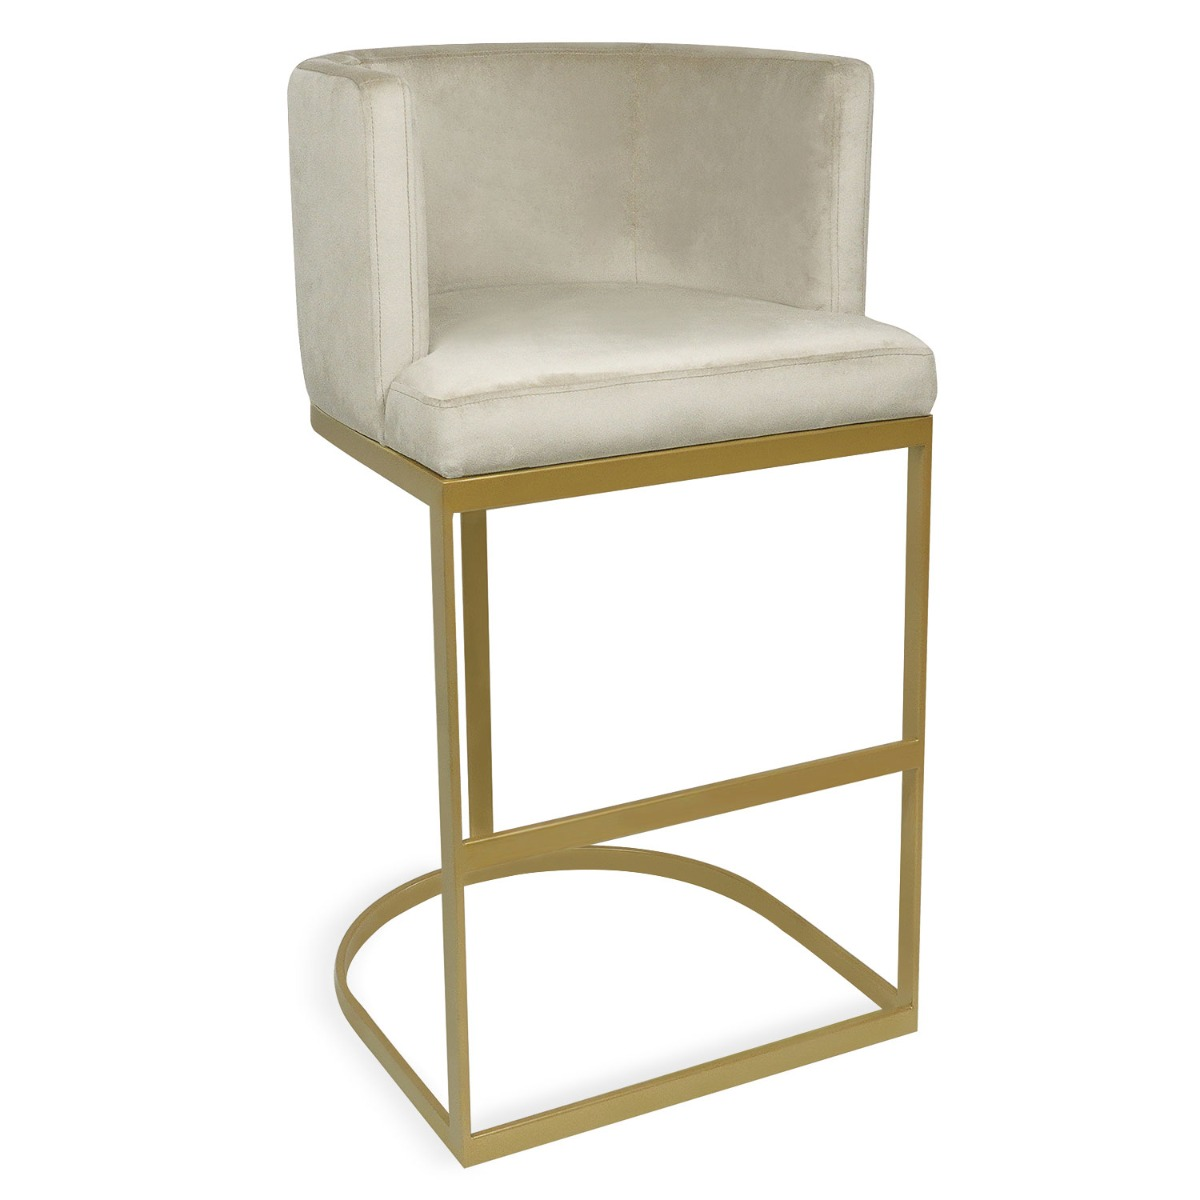 1 Chaise de bar Noellie Velours Taupe Pieds Or